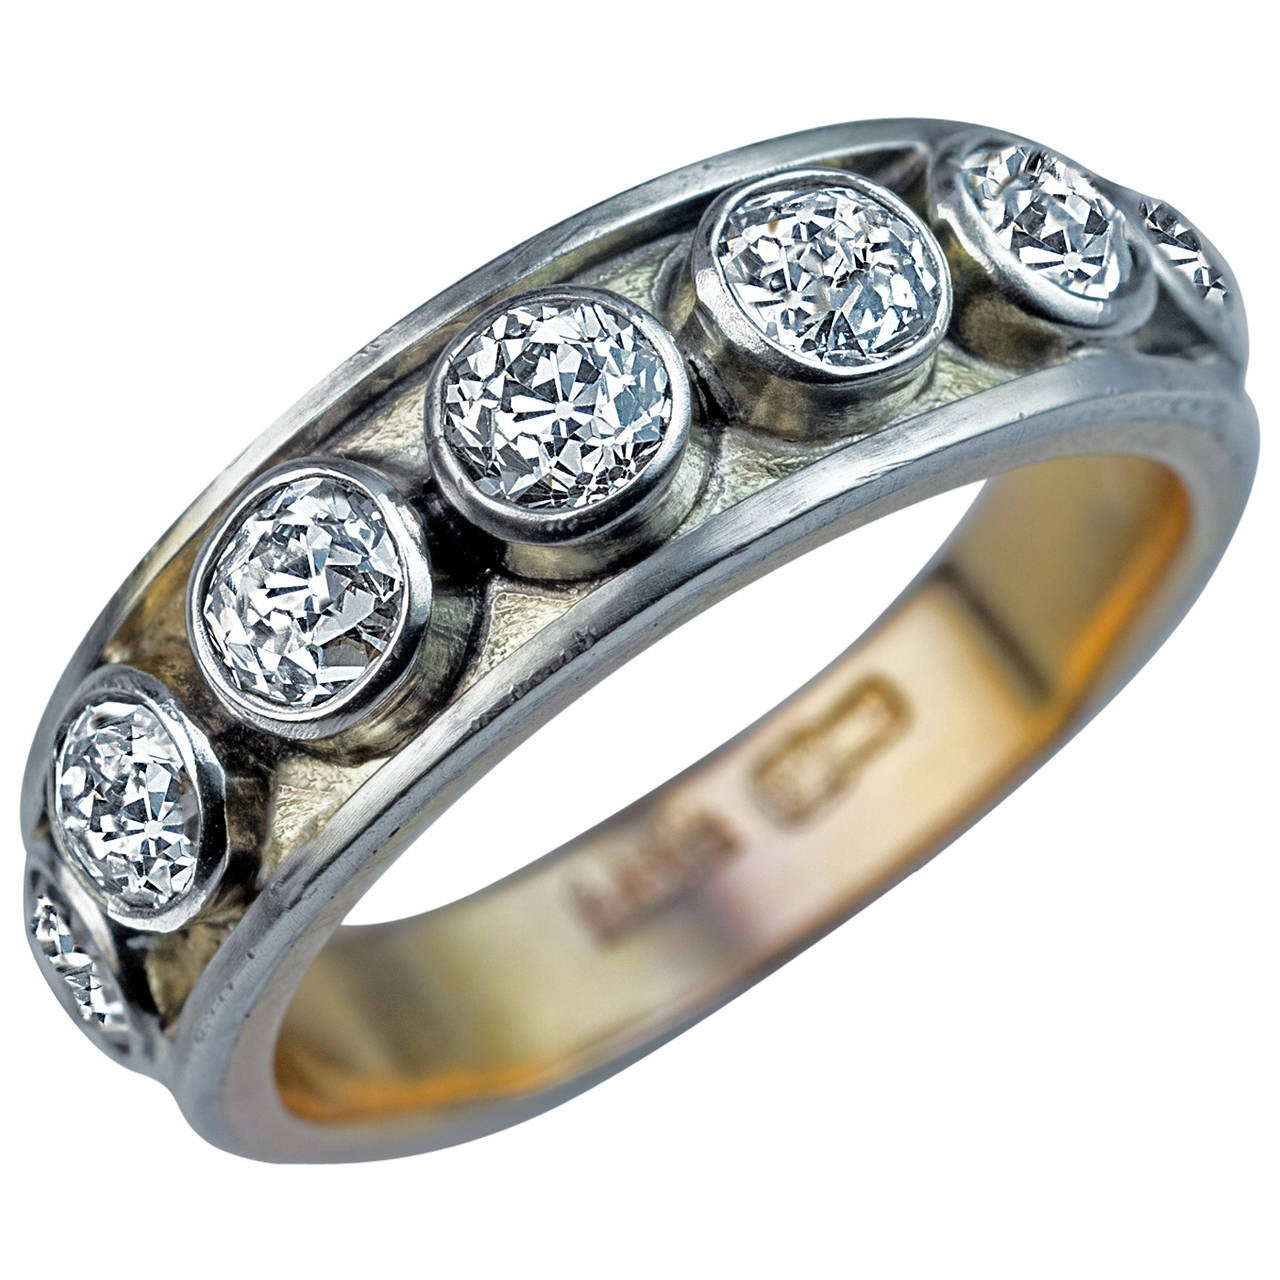 Antique Russian Mens Diamond Gold Band Ring For Sale at 1stdibs